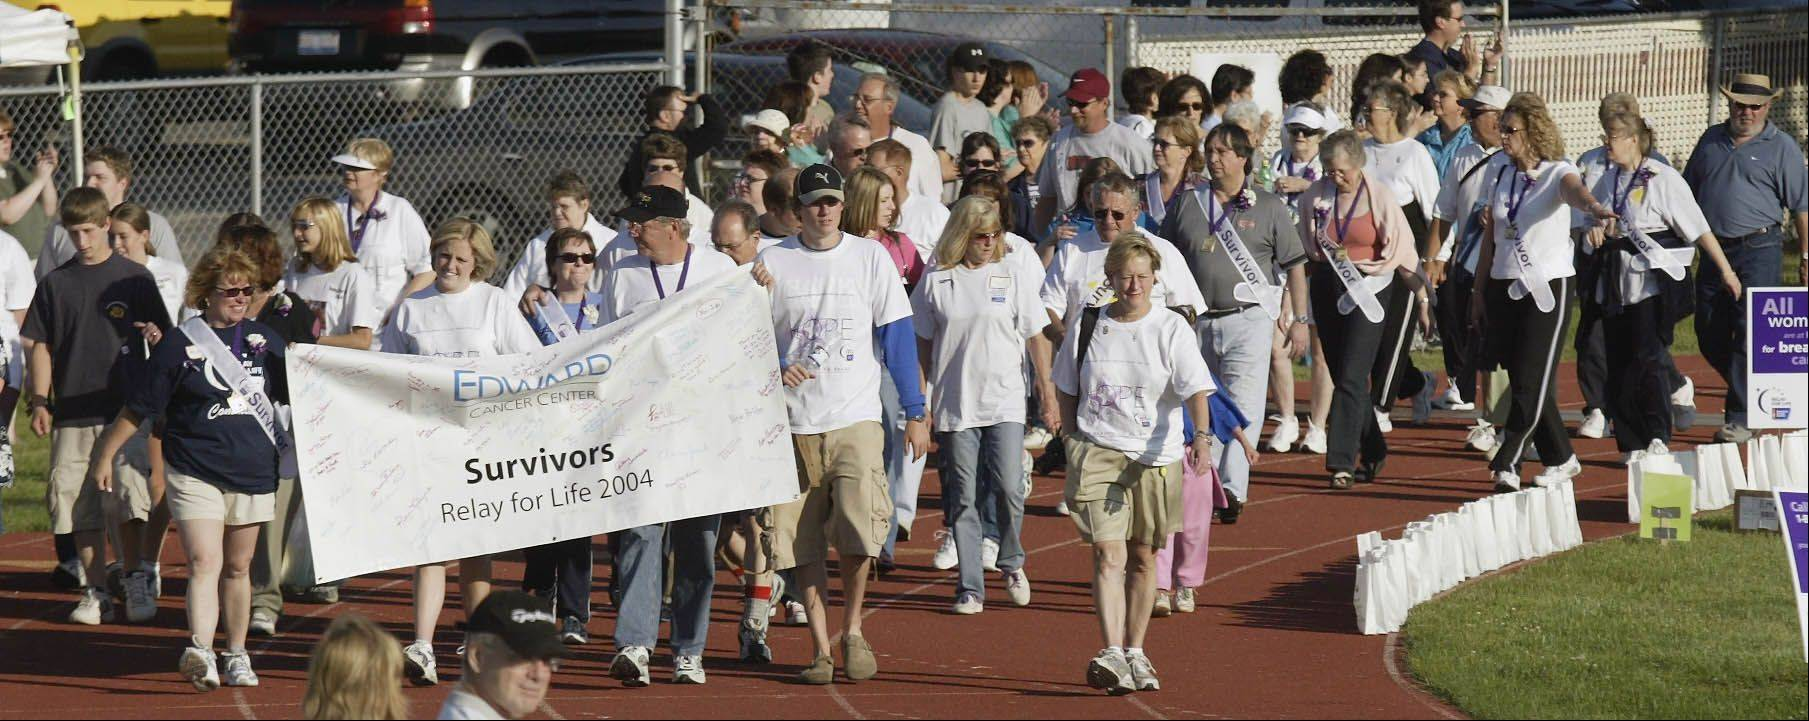 Relay For Life events -- planned throughout the suburbs and throughout the summer -- support the American Cancer Society's efforts to fund research and programs to help cancer patients and their families and caregivers.